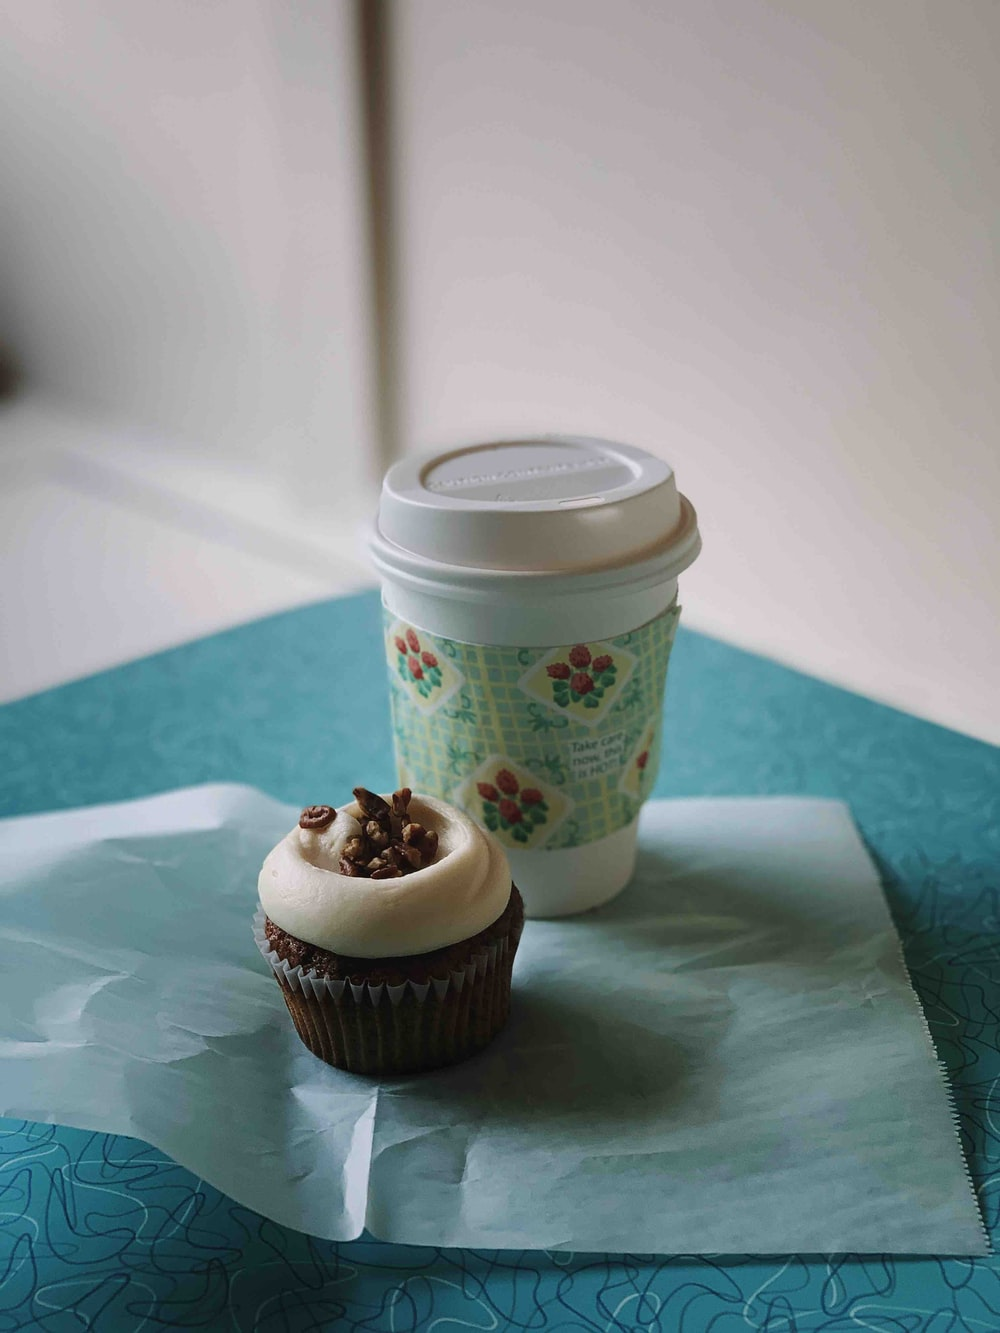 white and blue disposable cup beside chocolate cupcake